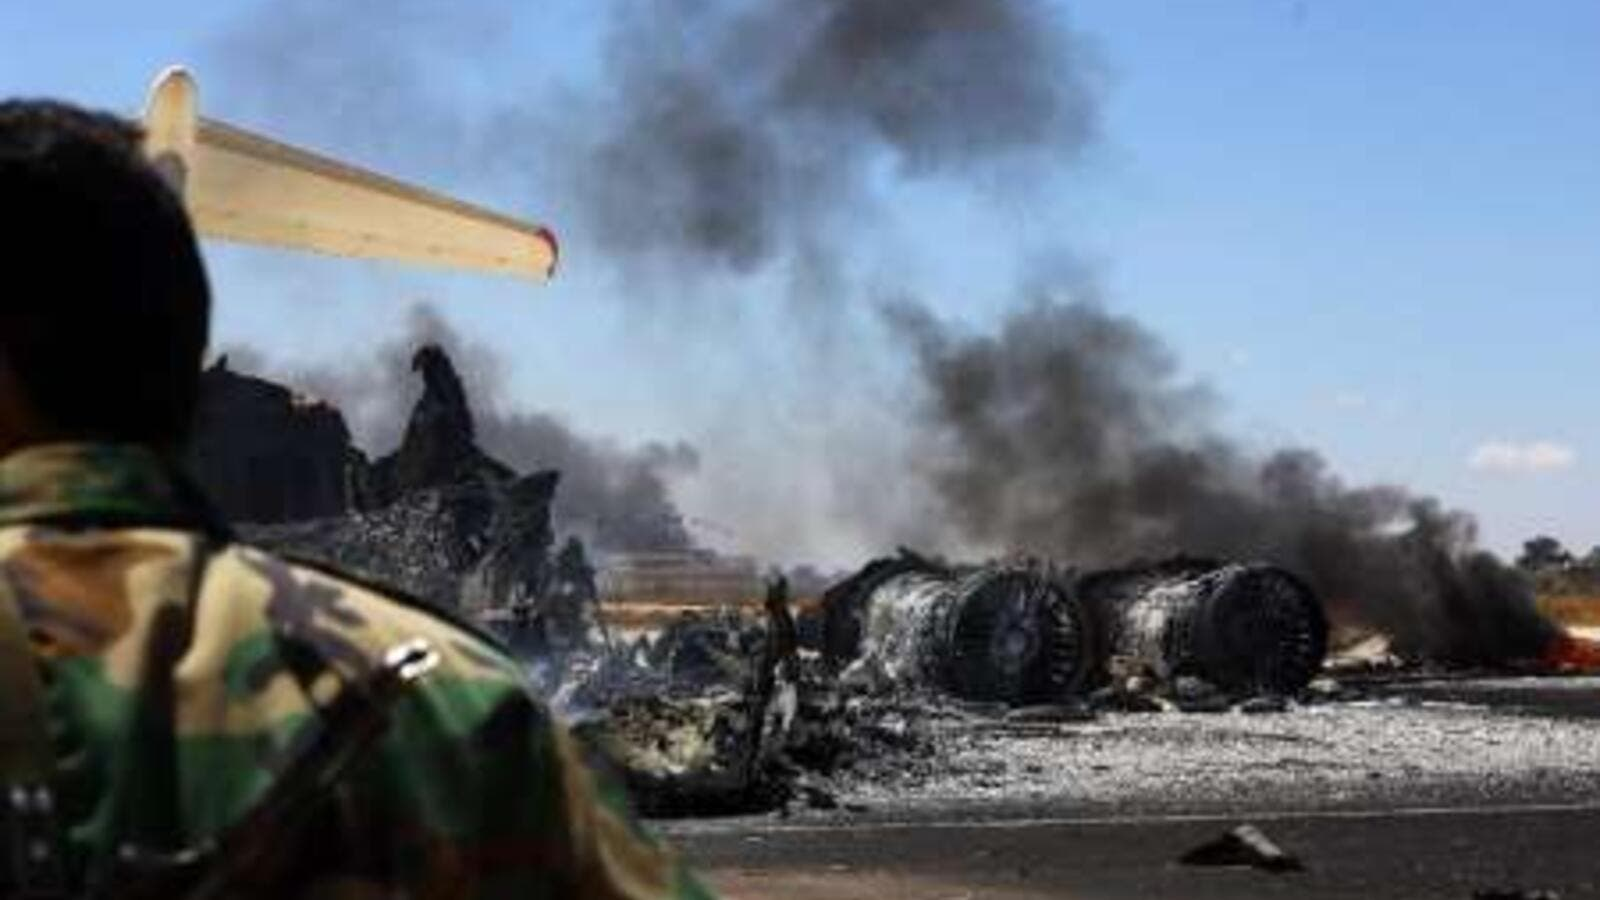 The remains of a burnt airplane seen at the Tripoli International Airport in Libya on July 16, 2014. (AFP/Mahmud Turkia)